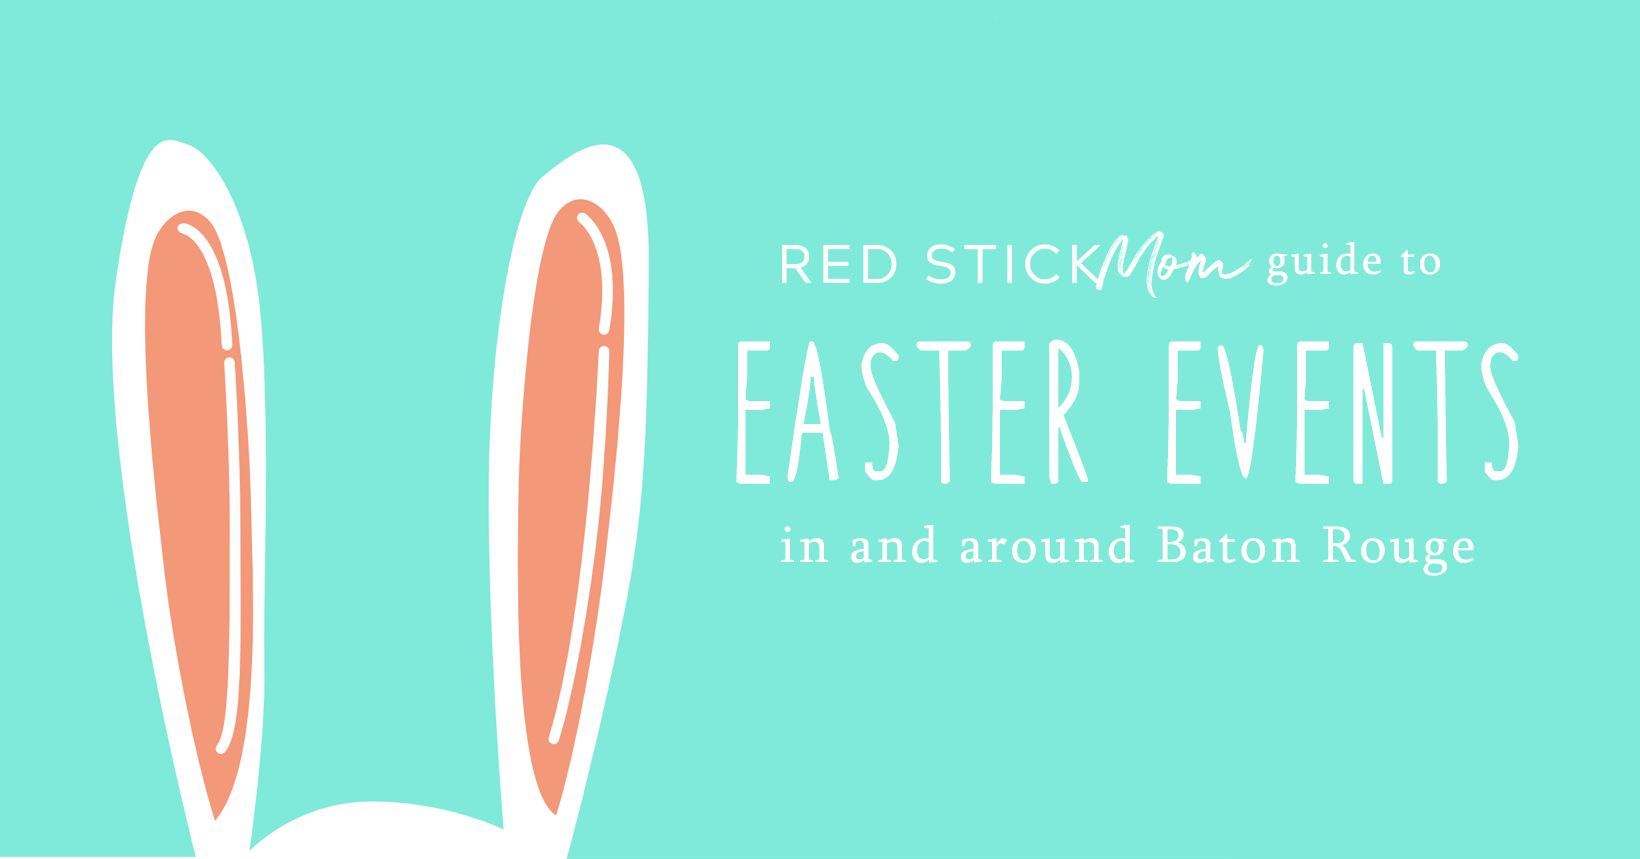 Christmas Events In Baton Rouge 2020 2020 Guide to Easter Events in Baton Rouge